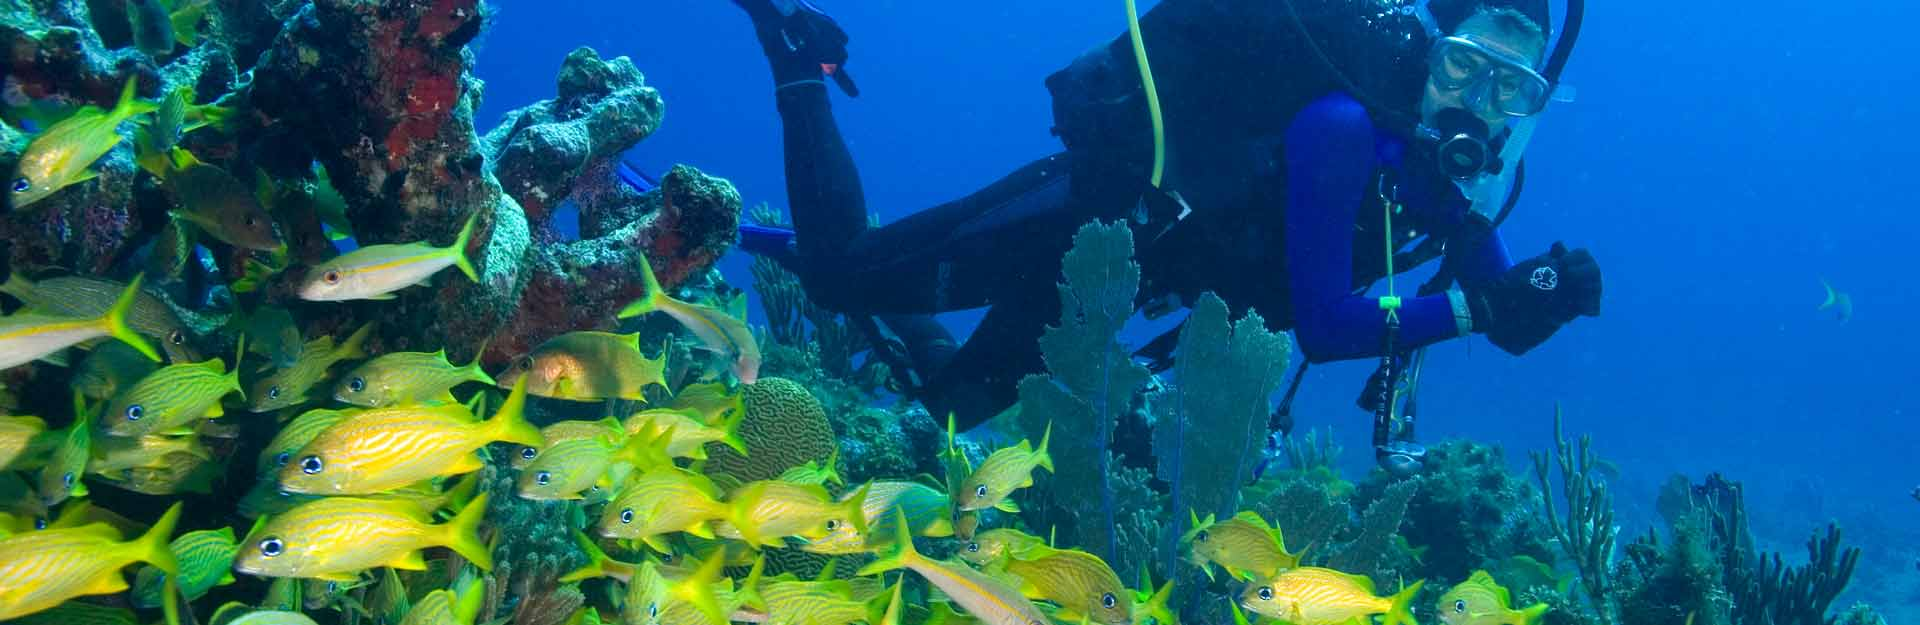 Diving, Beaches, Los Canarreos Archipelago, Coral Reef, Underwater Fauna and FloraTransel.